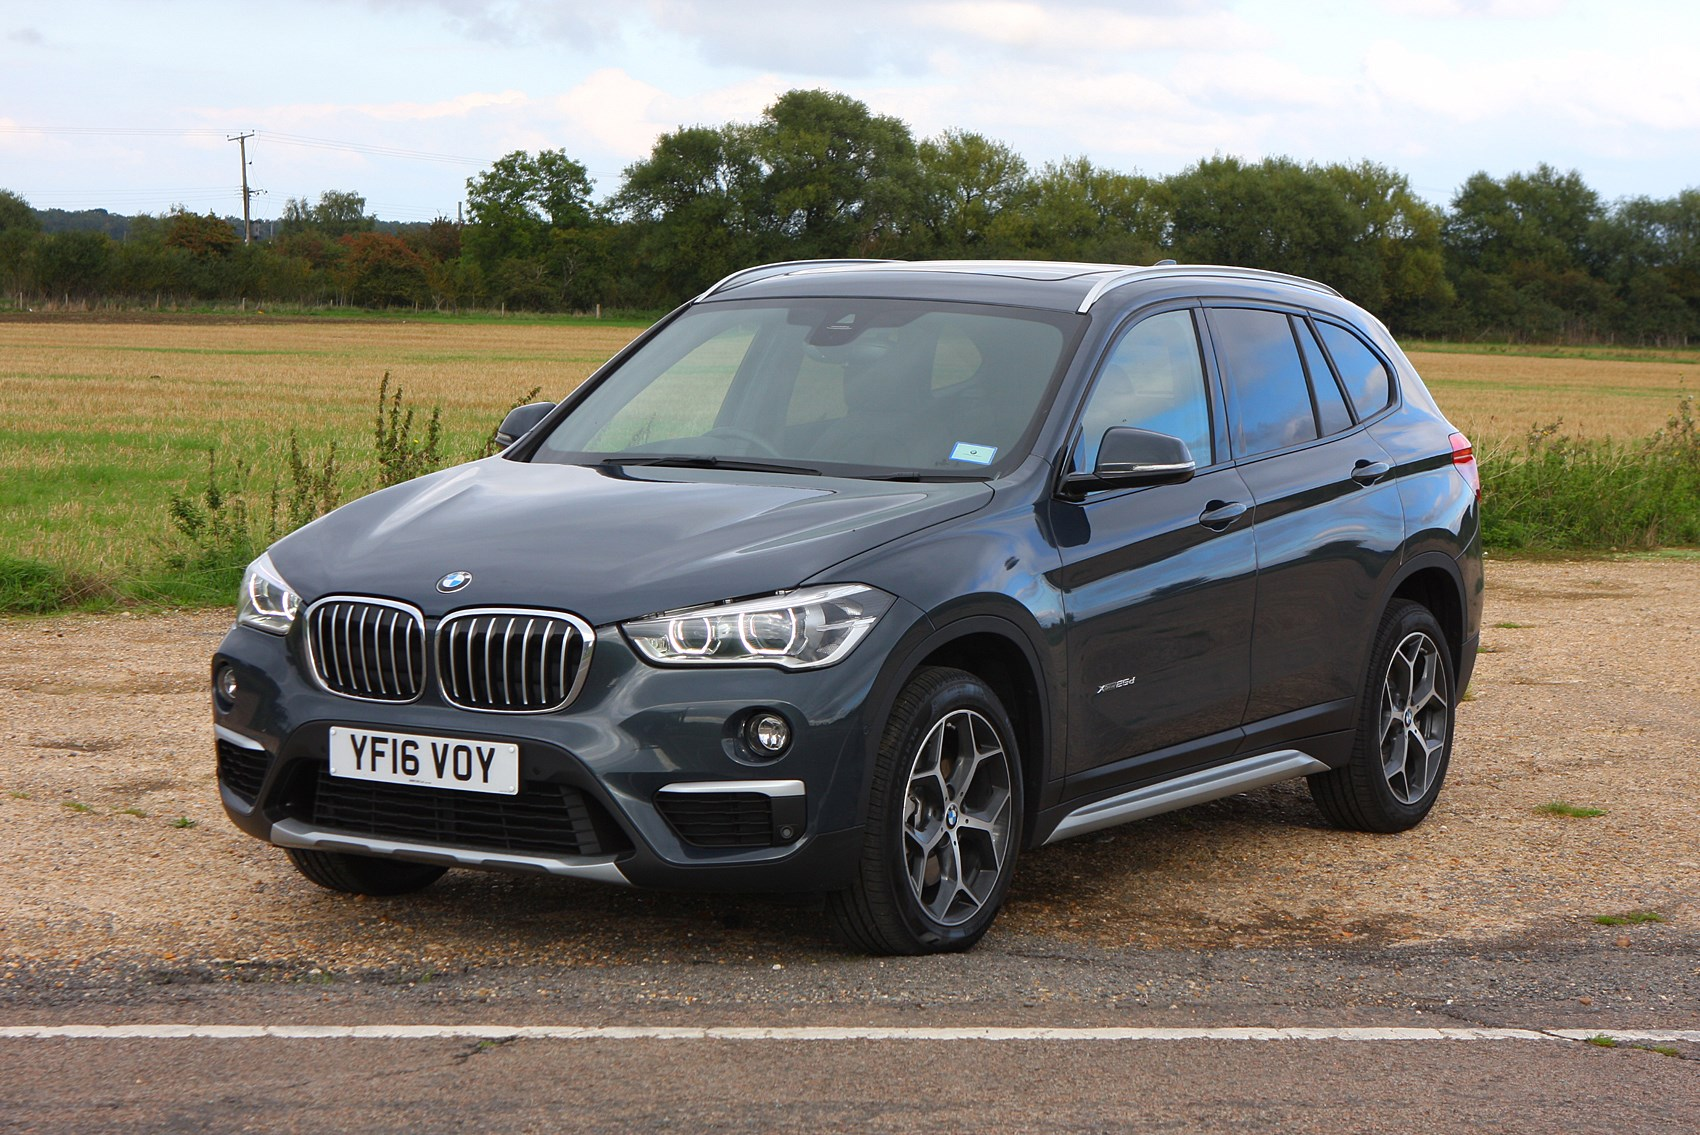 bmw x1 suv 2015 photos parkers. Black Bedroom Furniture Sets. Home Design Ideas